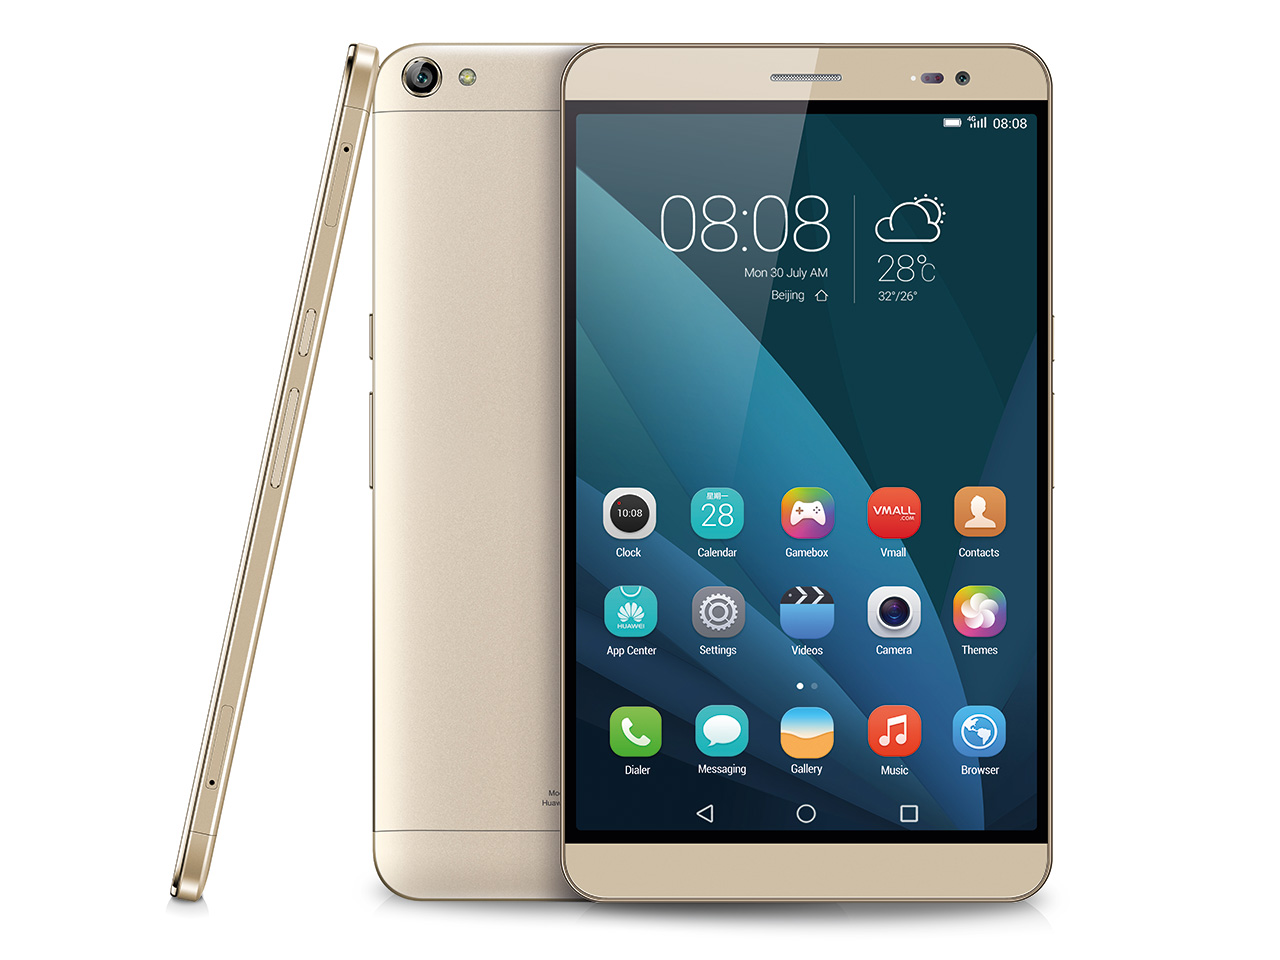 Huawei MediaPad X2 is a 7-inch tablet with 13MP camera: Digital